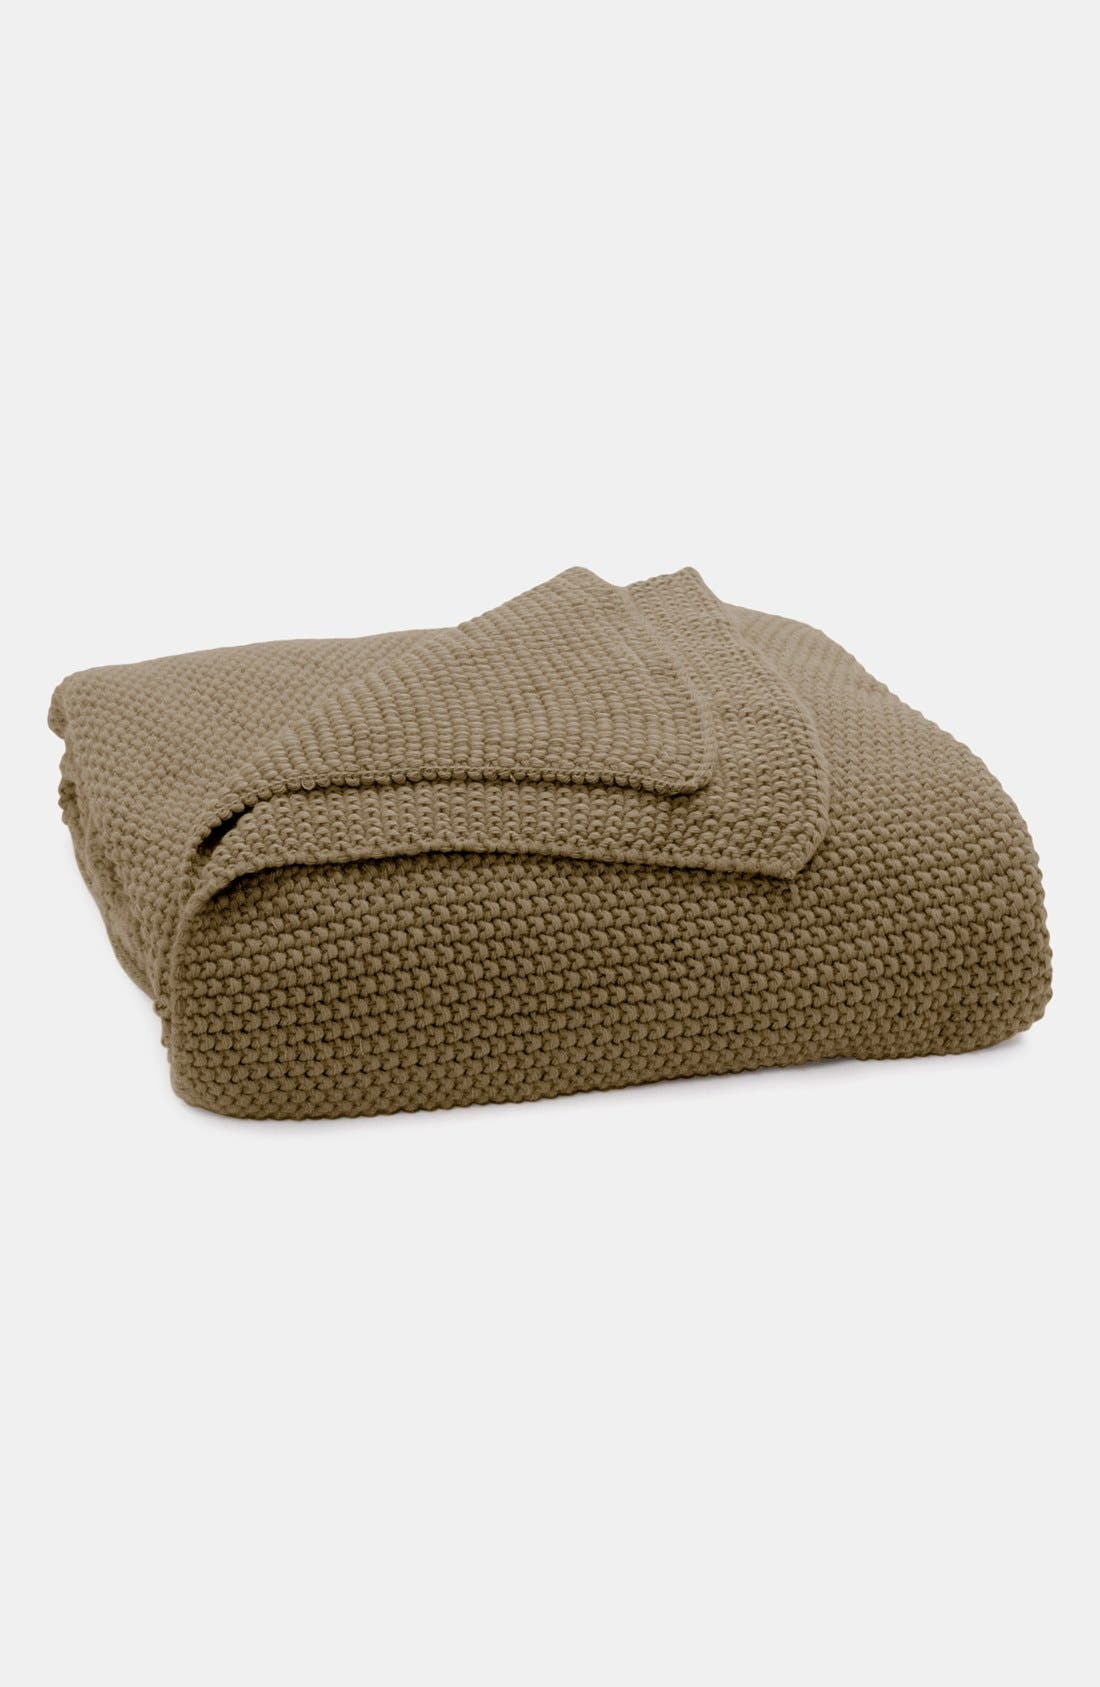 Alternate Image 1 Selected - Donna Karan 'Essentials' Knit Throw (Online Only)